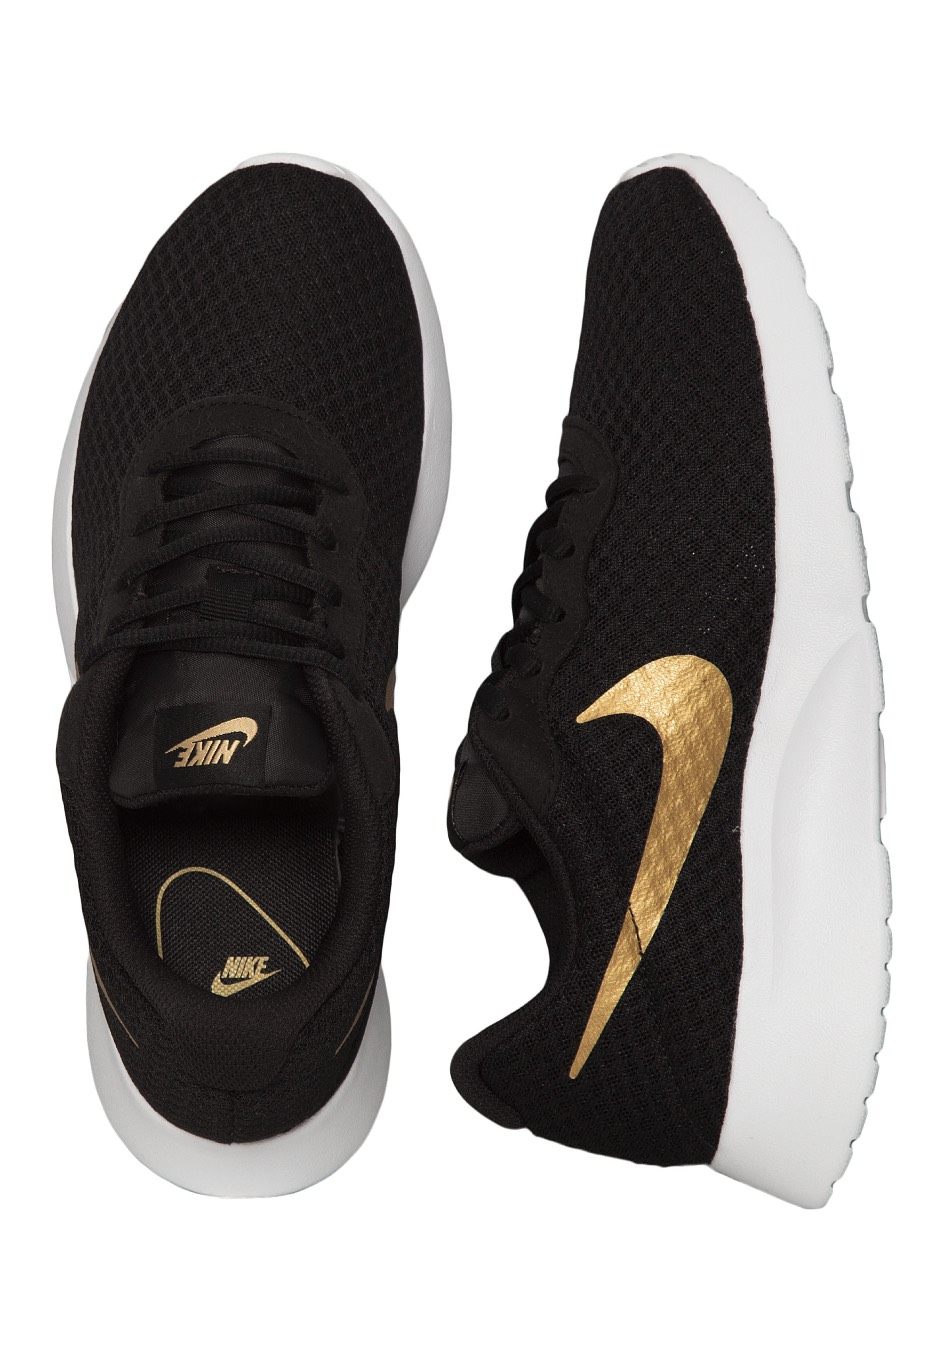 9d018e59681d Nike - Tanjun Black Metallic Gold - Girl Shoes - Impericon.com Worldwide